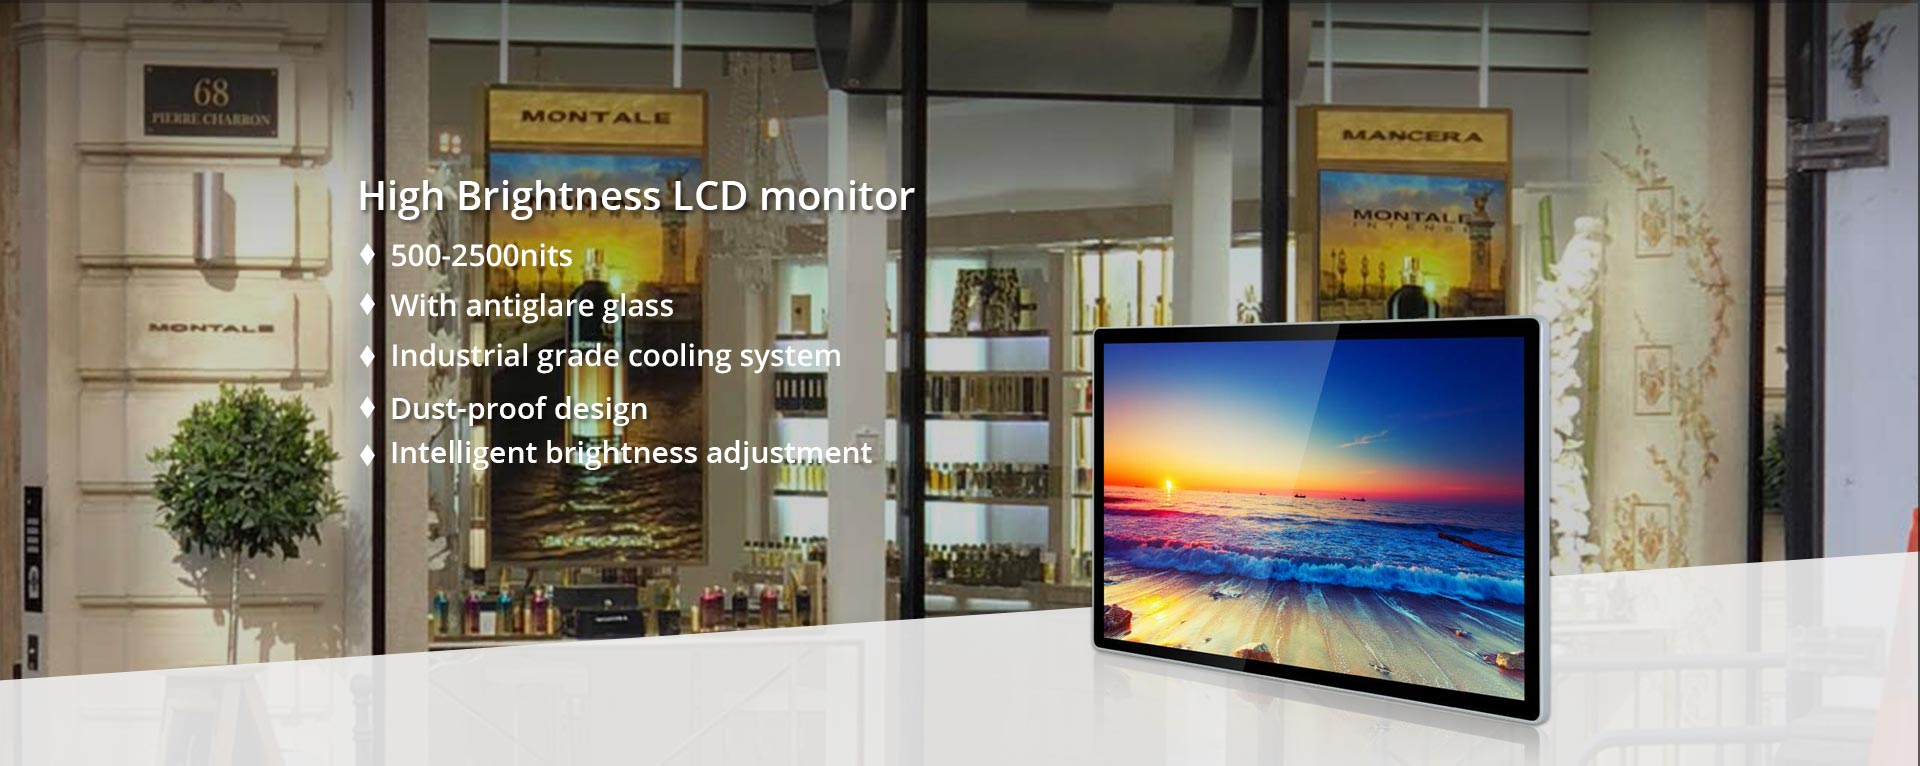 High Brightness LCD Monitor